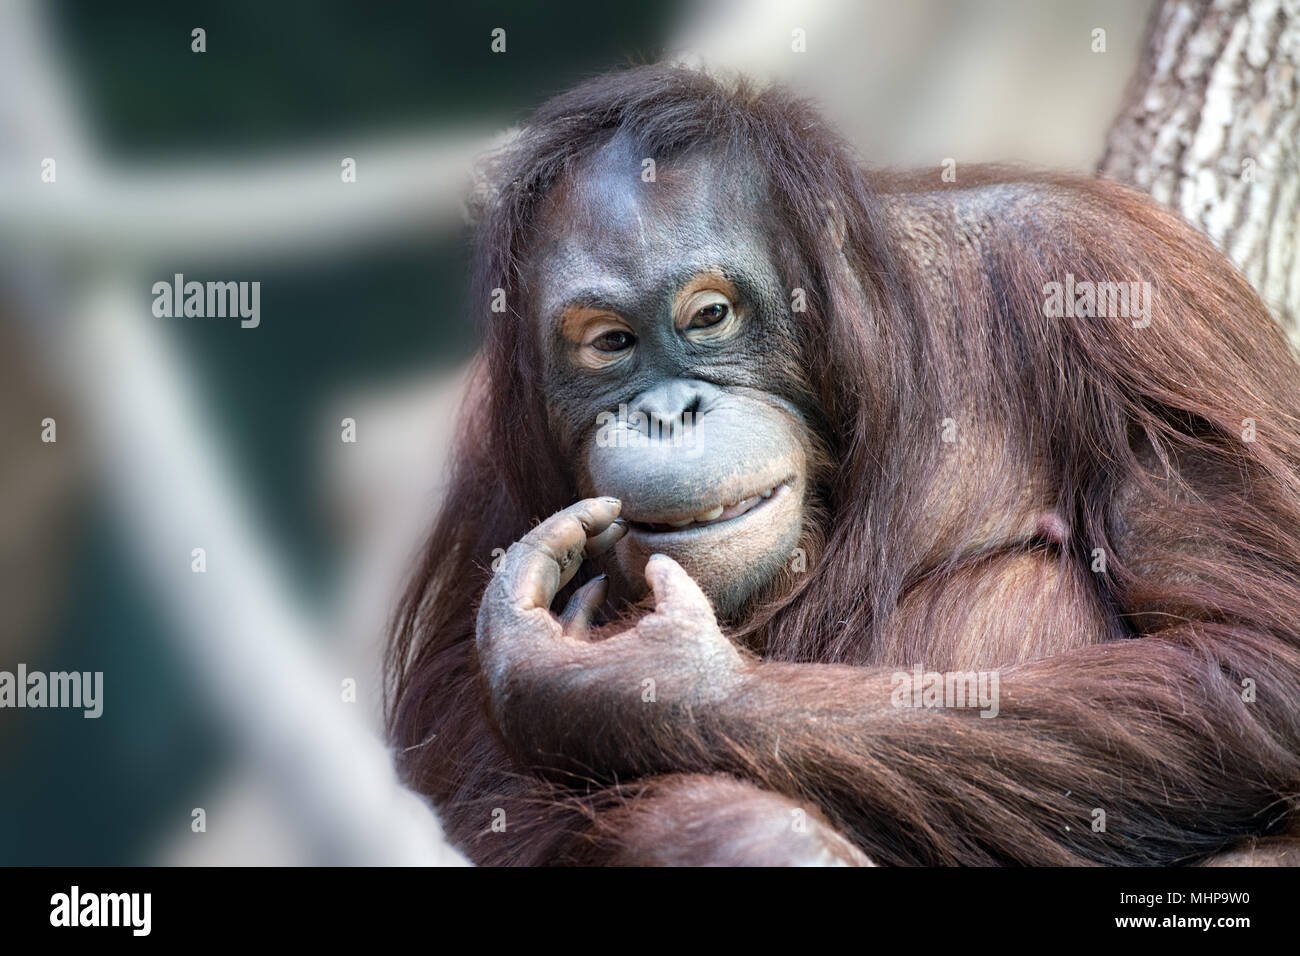 orang utan monkey looking at you while cleaning teeth with finger hand Stock Photo